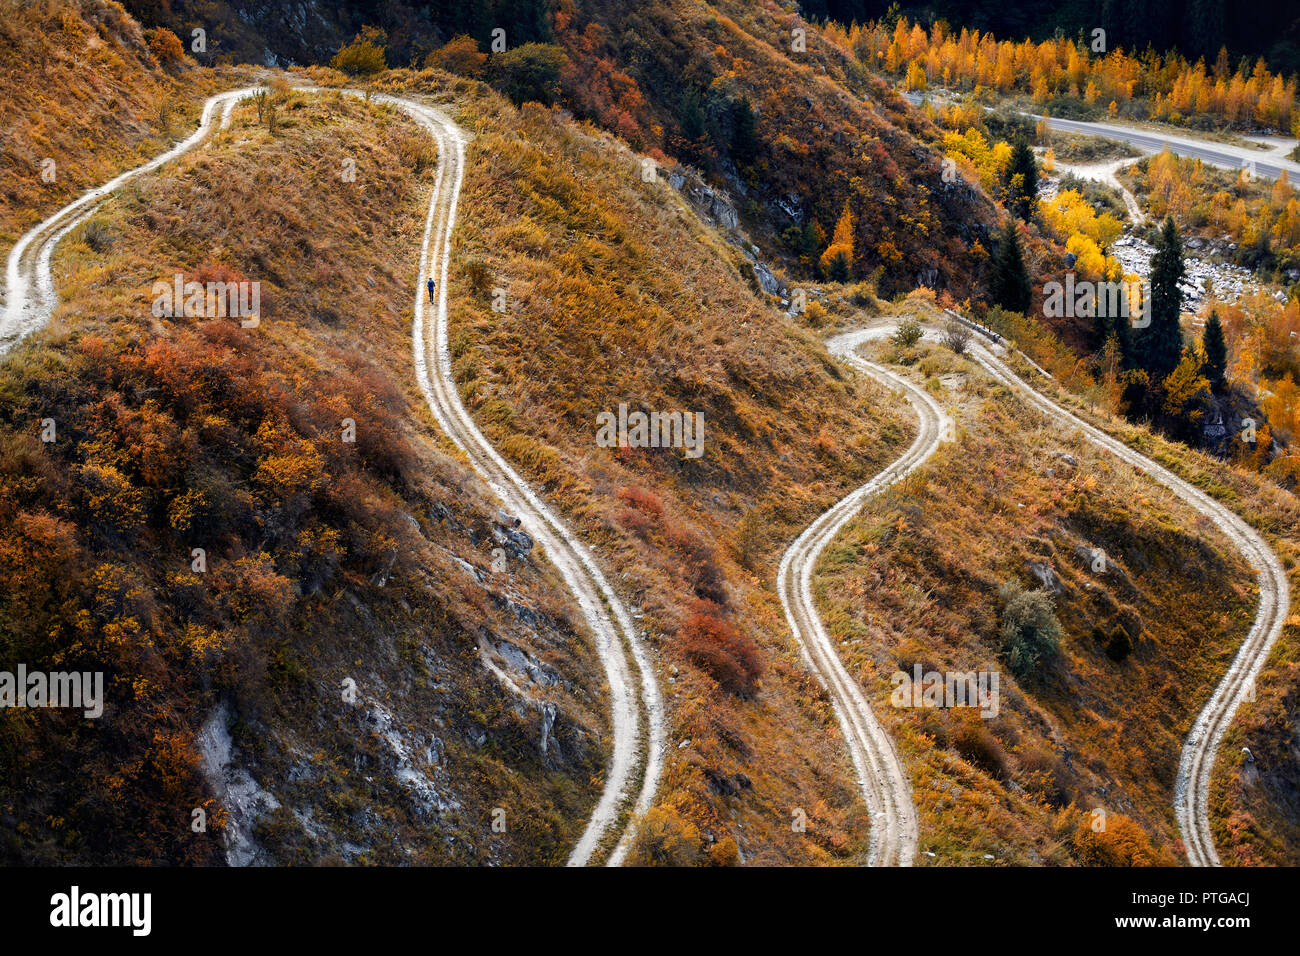 Aerial view of runner athlete running on the serpentine road in the mountains - Stock Image